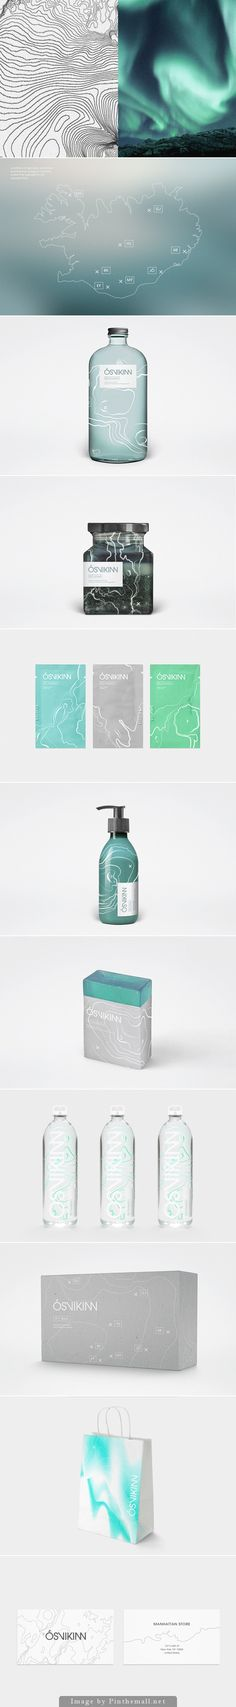 Ósvikinn a beautiful student packaging design and branding concept for a line of natural health and wellness products from Iceland curated by Packaging Diva PD created via https://www.behance.net/gallery/17018563/Osvikinn